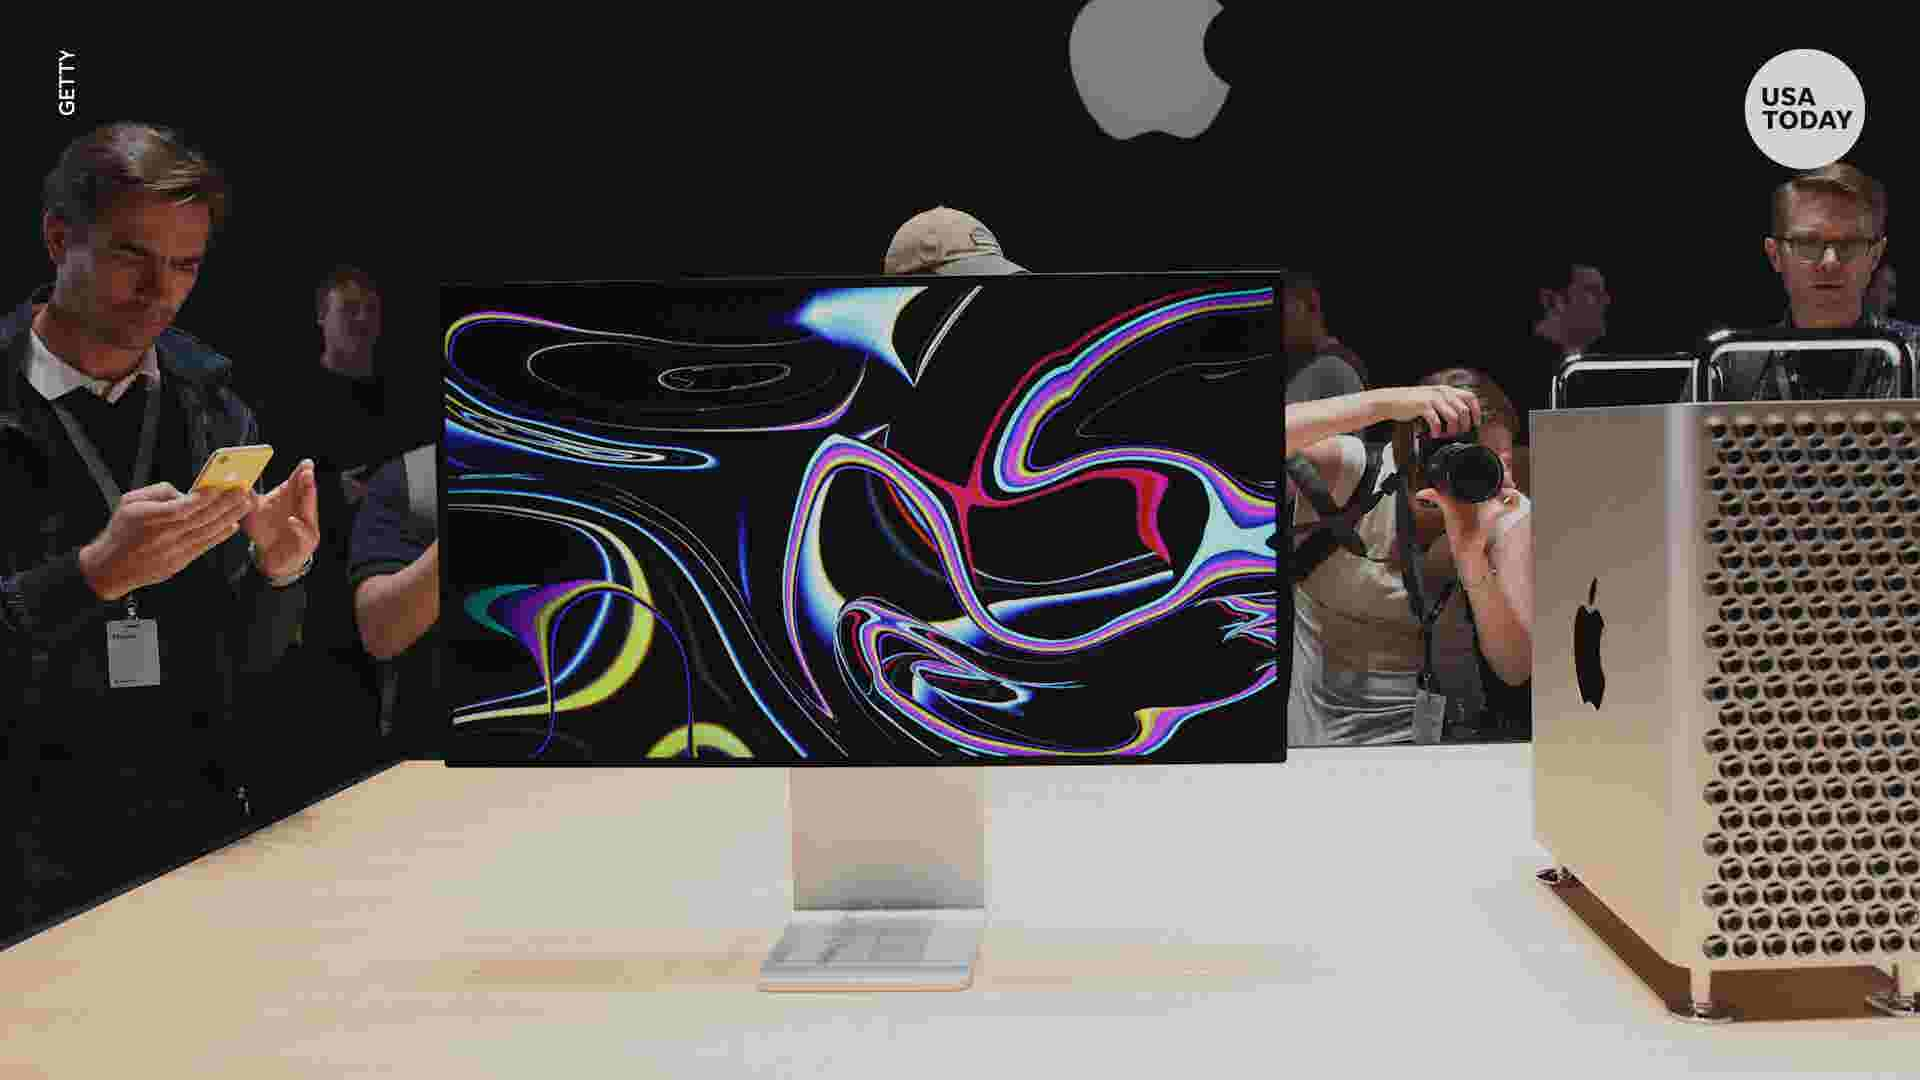 Apple gets mocked for its $1,000 monitor stand